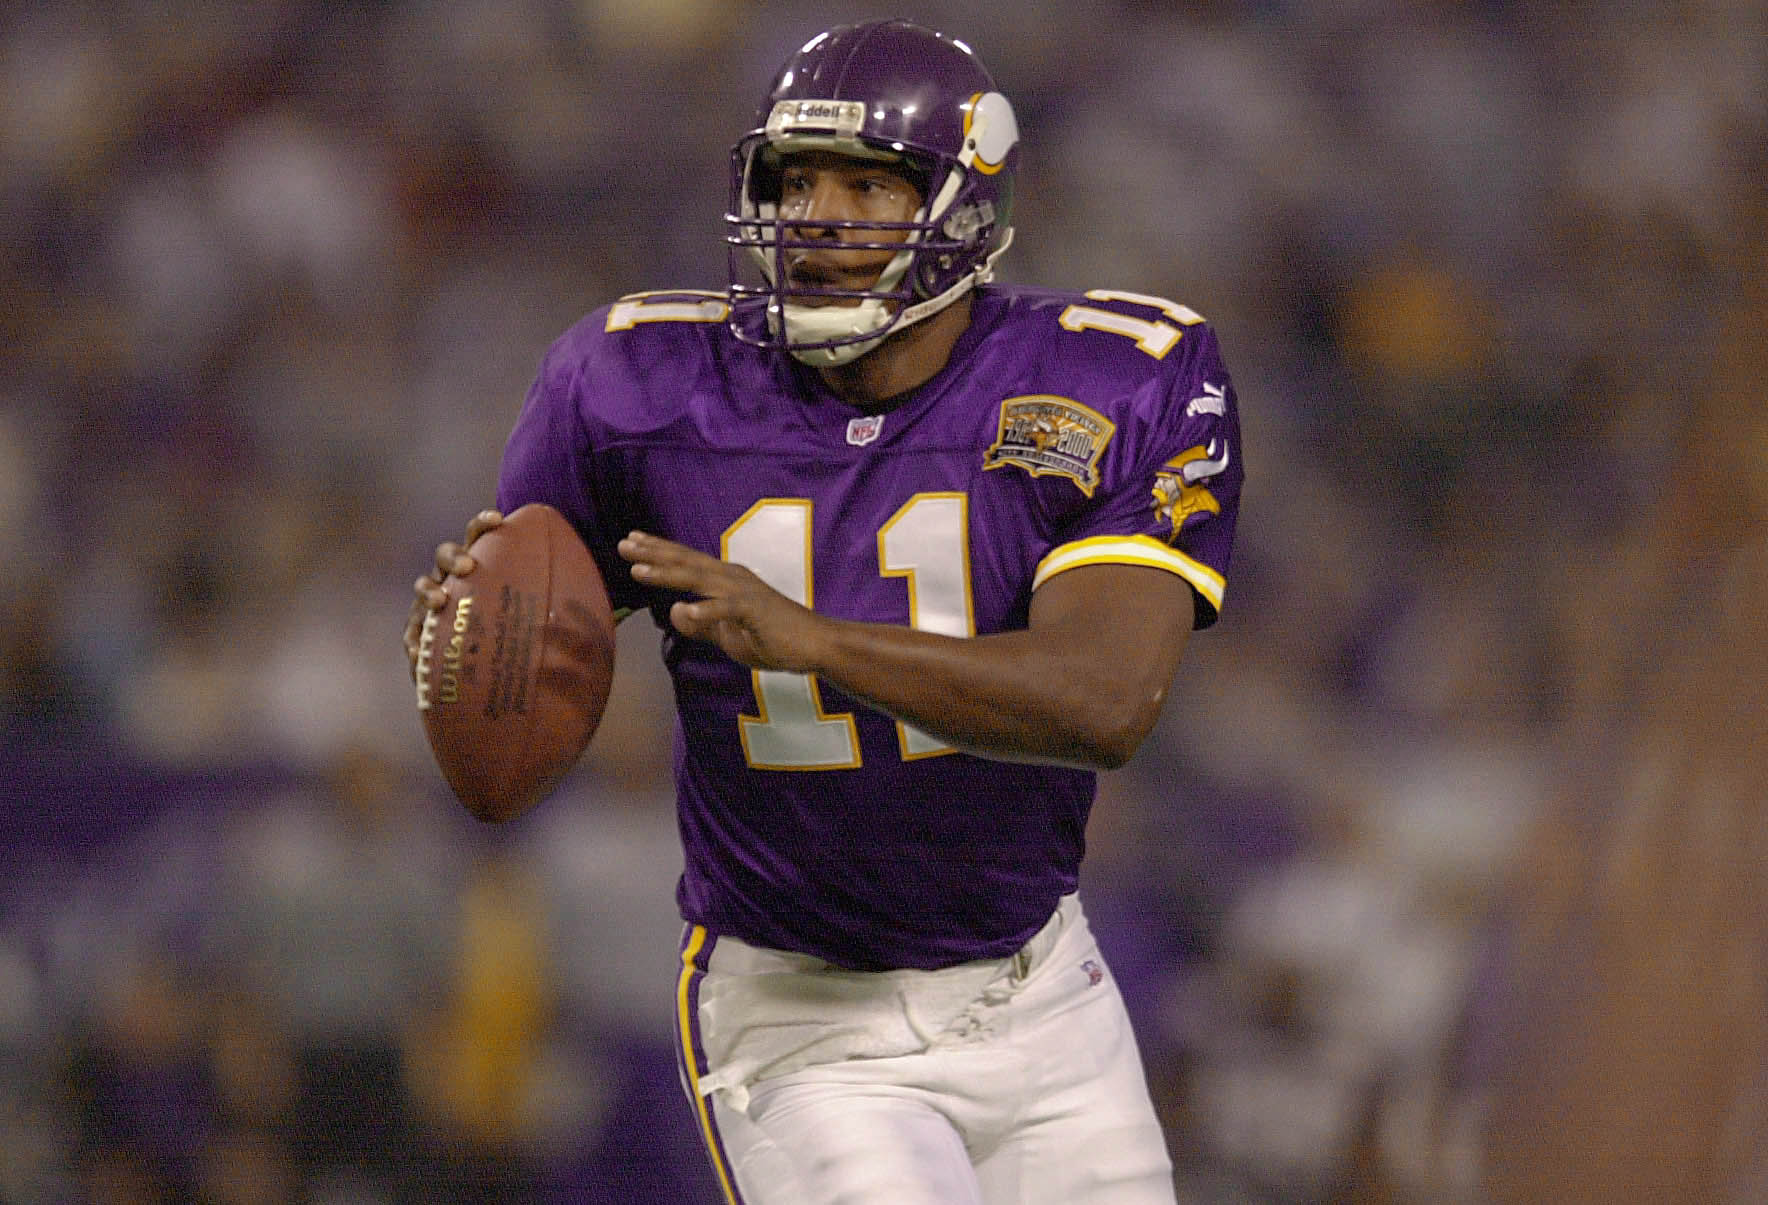 22 Oct 2000:  Daunte Culpepper #11 of the Minnesota Vikings runs with the ball as he looks to pass for a touchdown against the Buffalo Bills at the Hubert H. Humphrey Metrodome in Minneapolis, Minnesota. The Vikings won 31-27. DIGITAL CAMERA IMAGE. Mandat